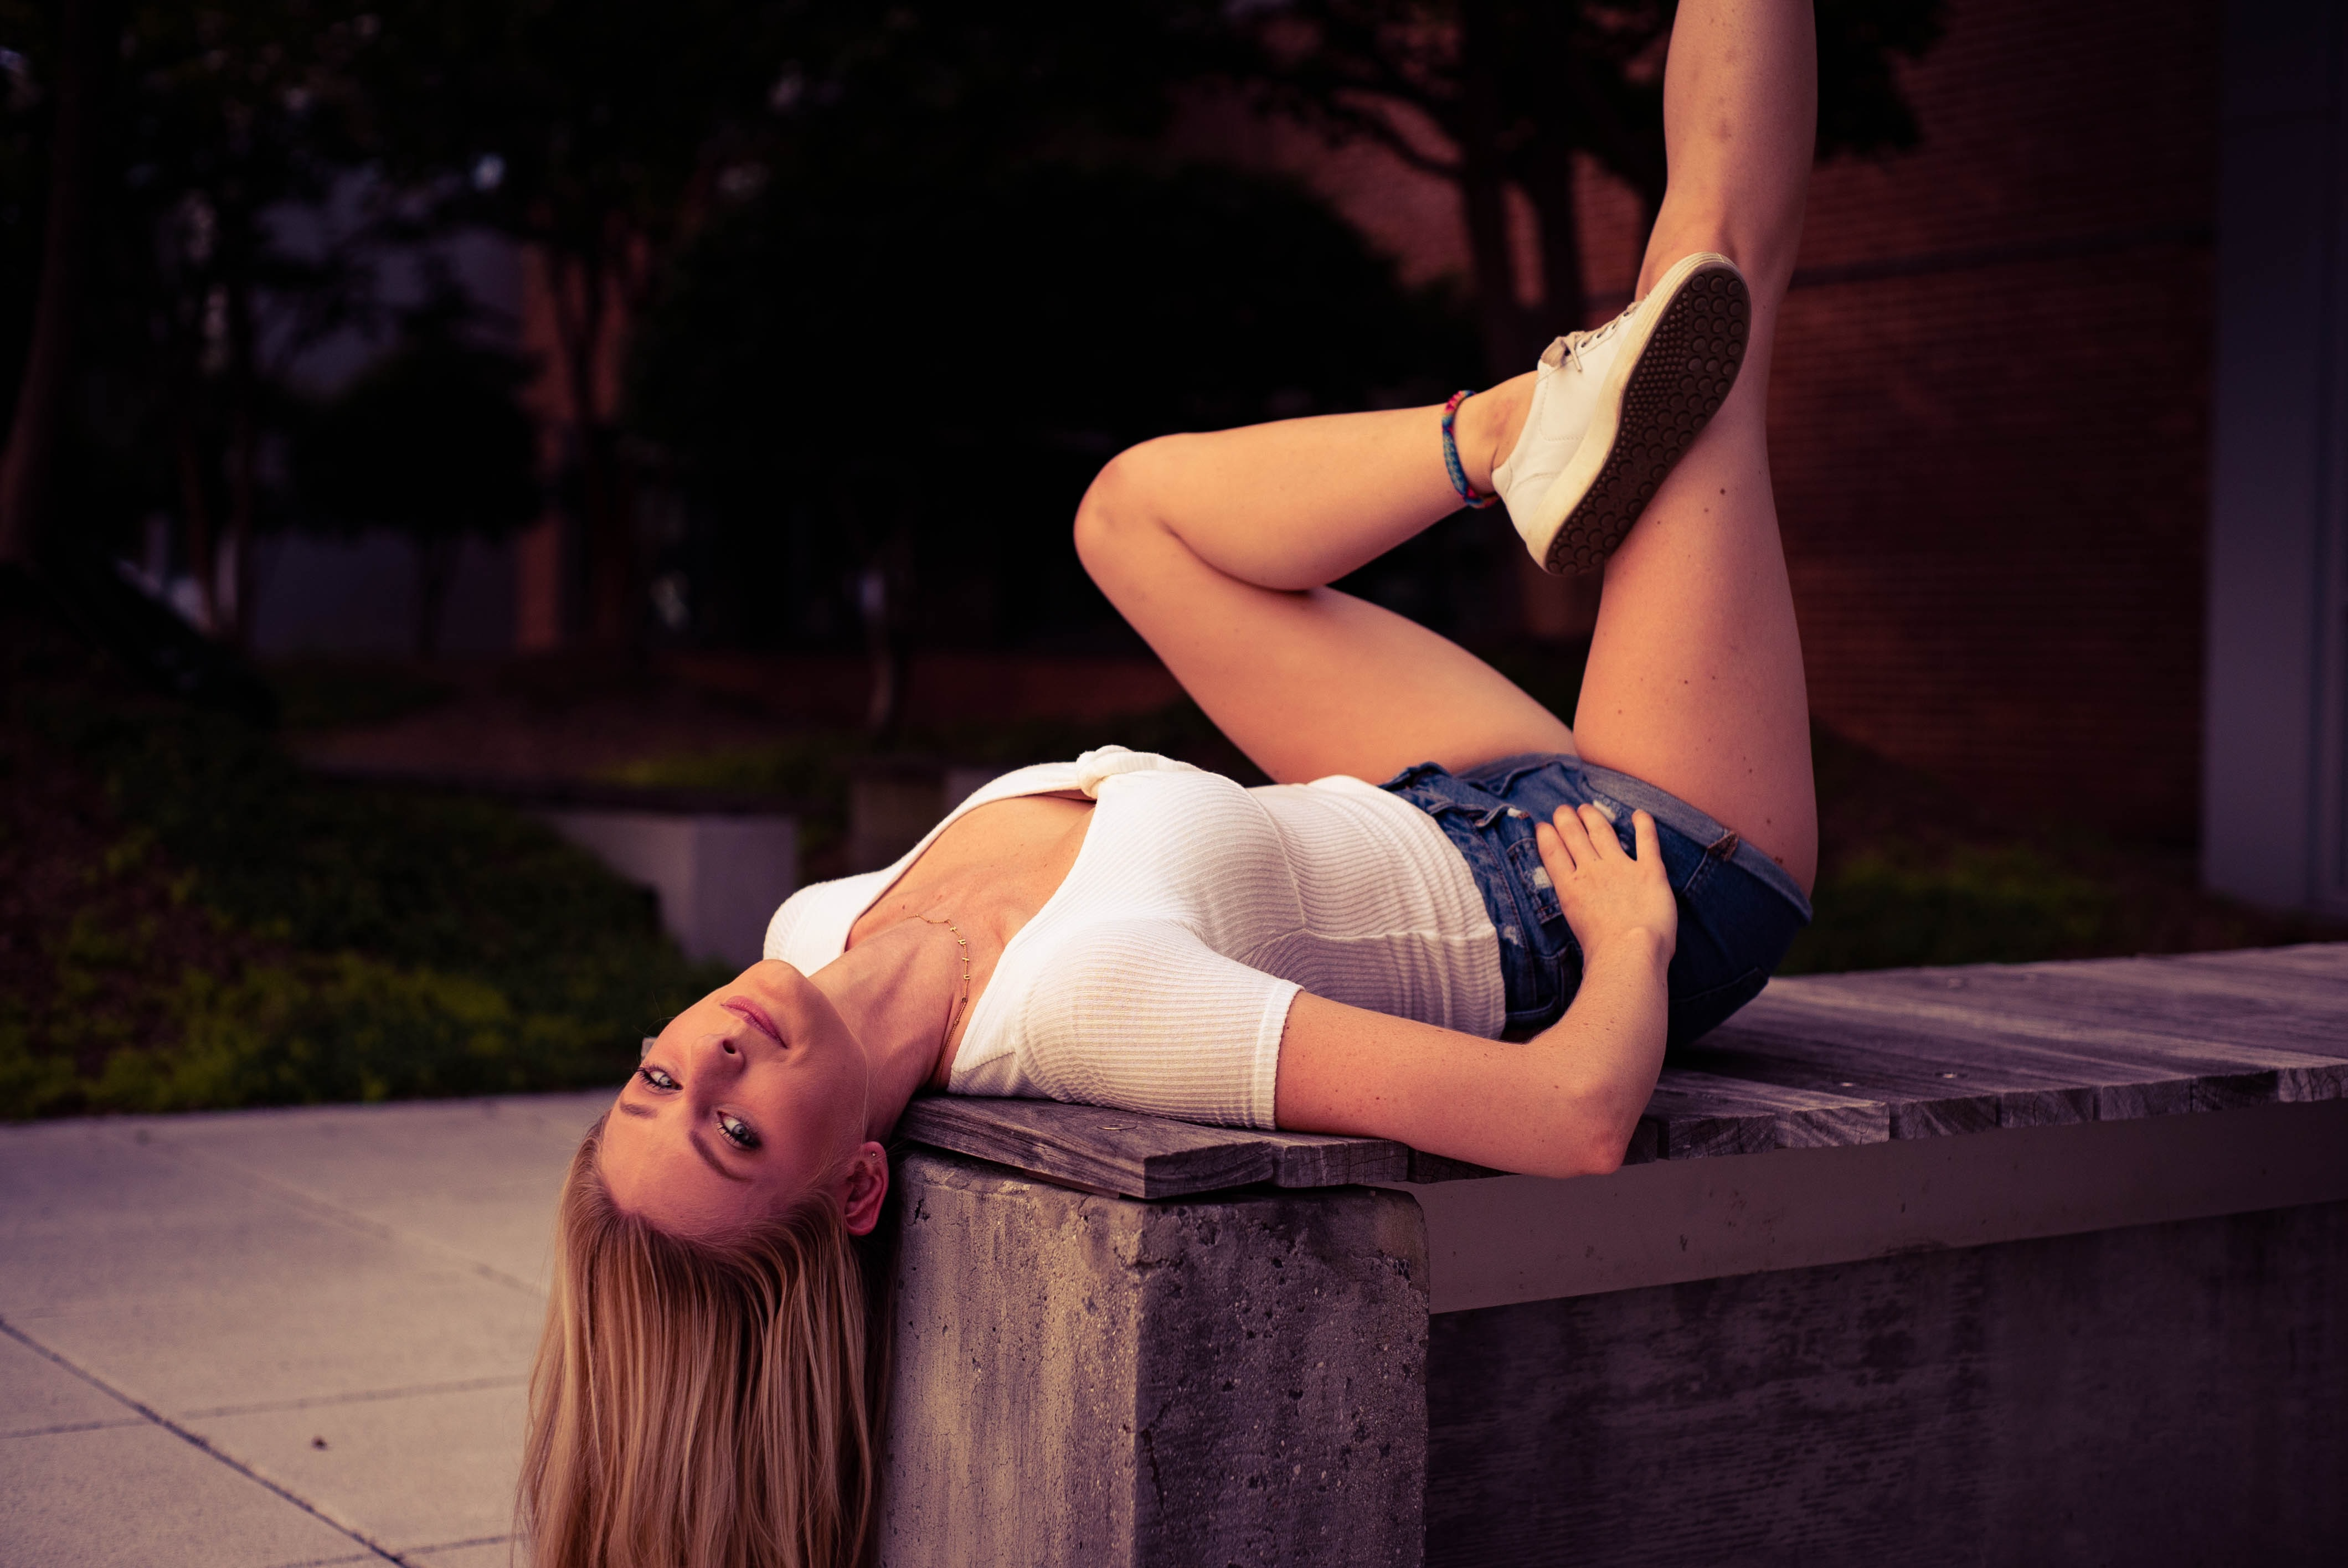 woman laying on bench outdoor